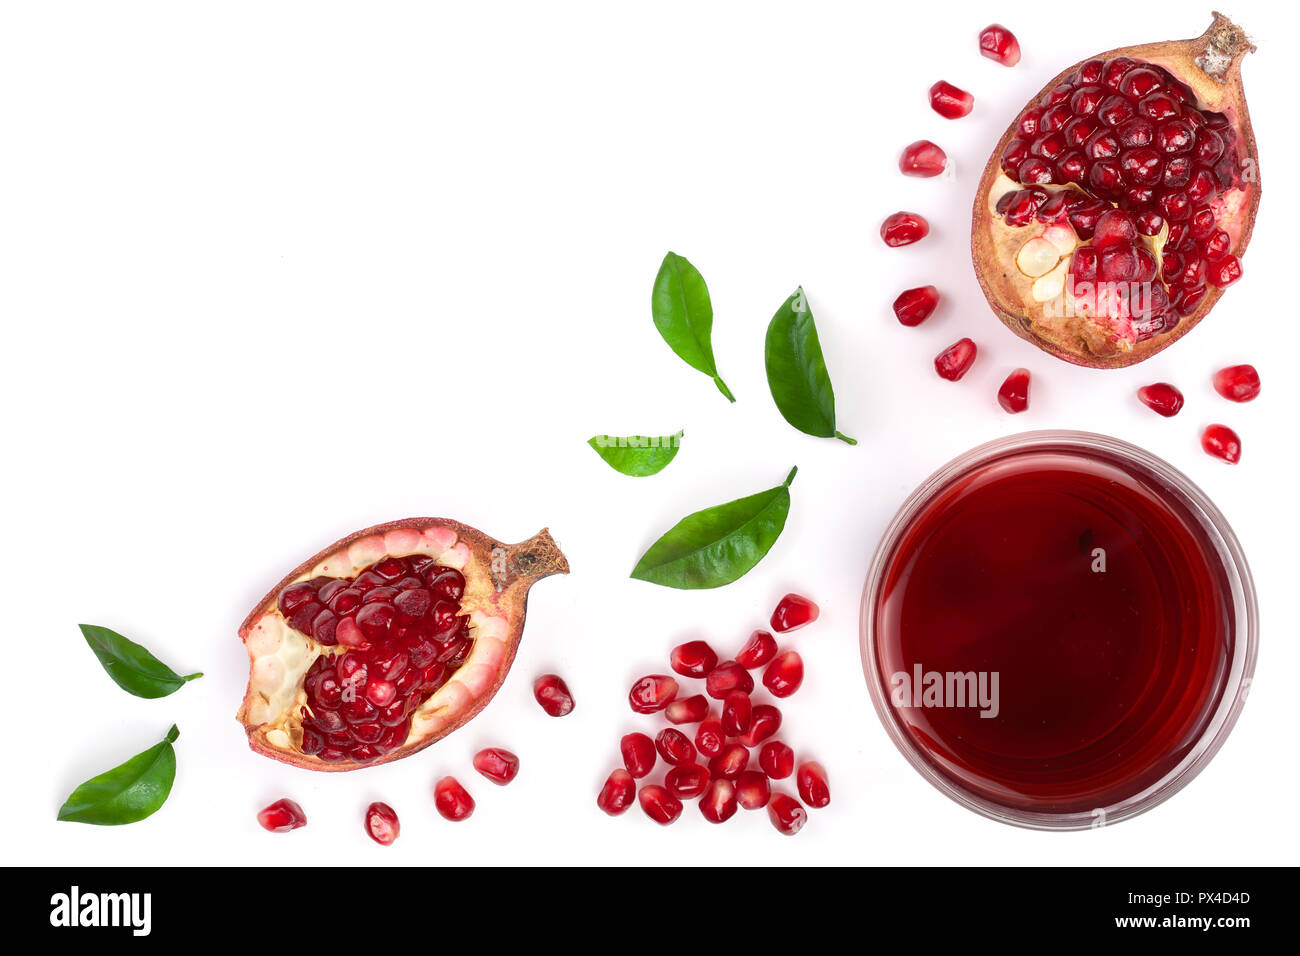 A glass of pomegranate juice with fresh pomegranate fruits isolated on white background with copy space for your text. Top view. Flat lay. Stock Photo